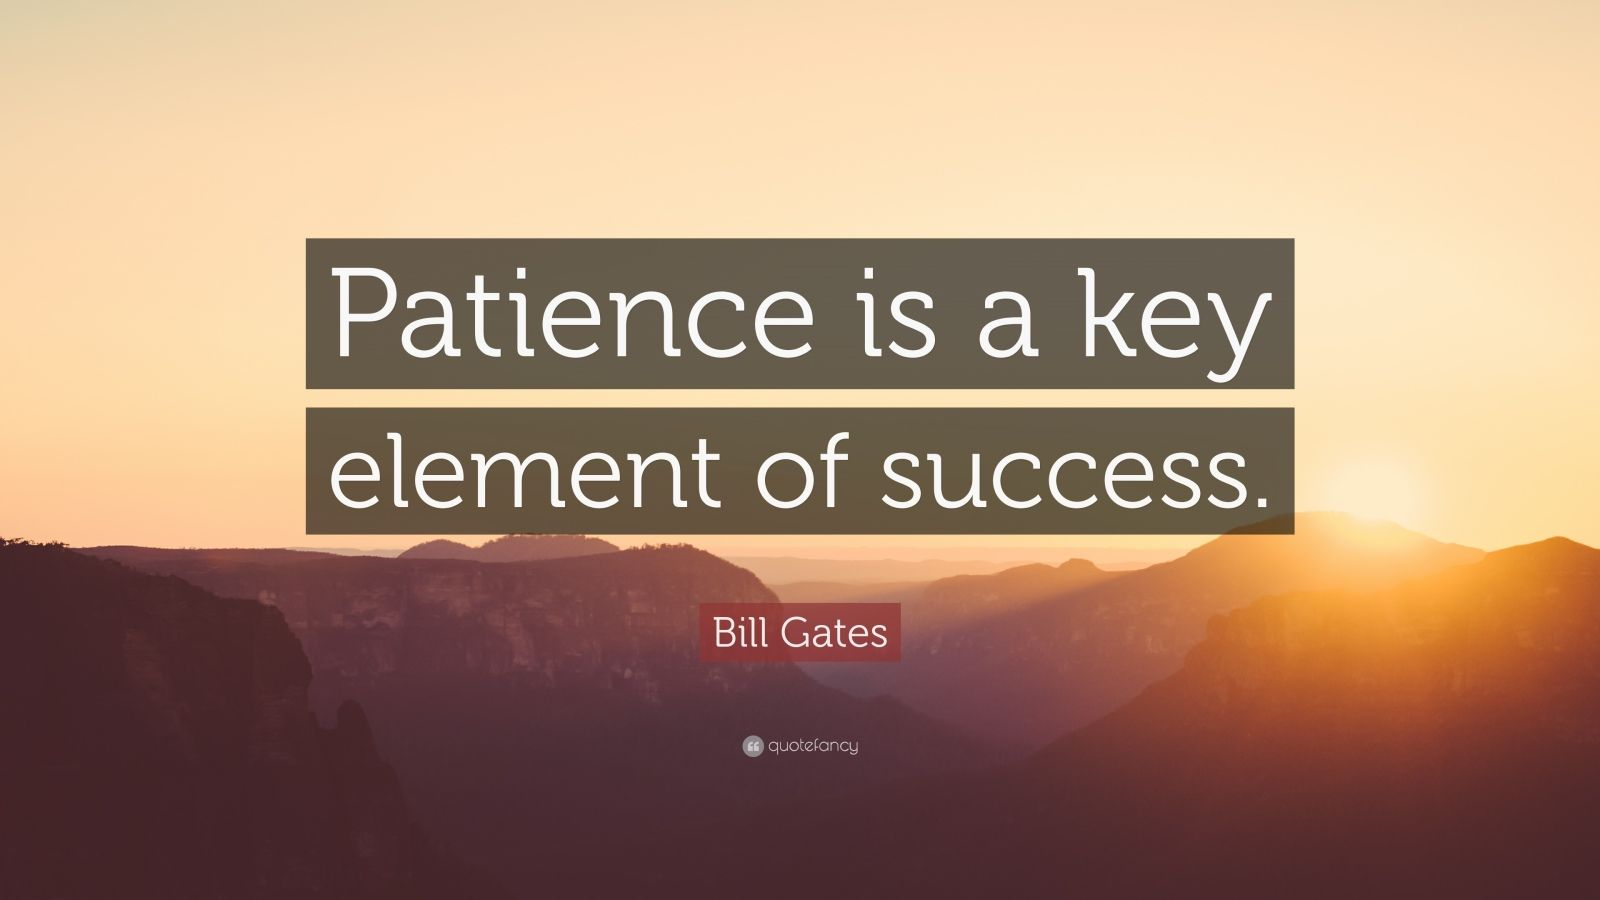 patience is the key to success essay scholarships